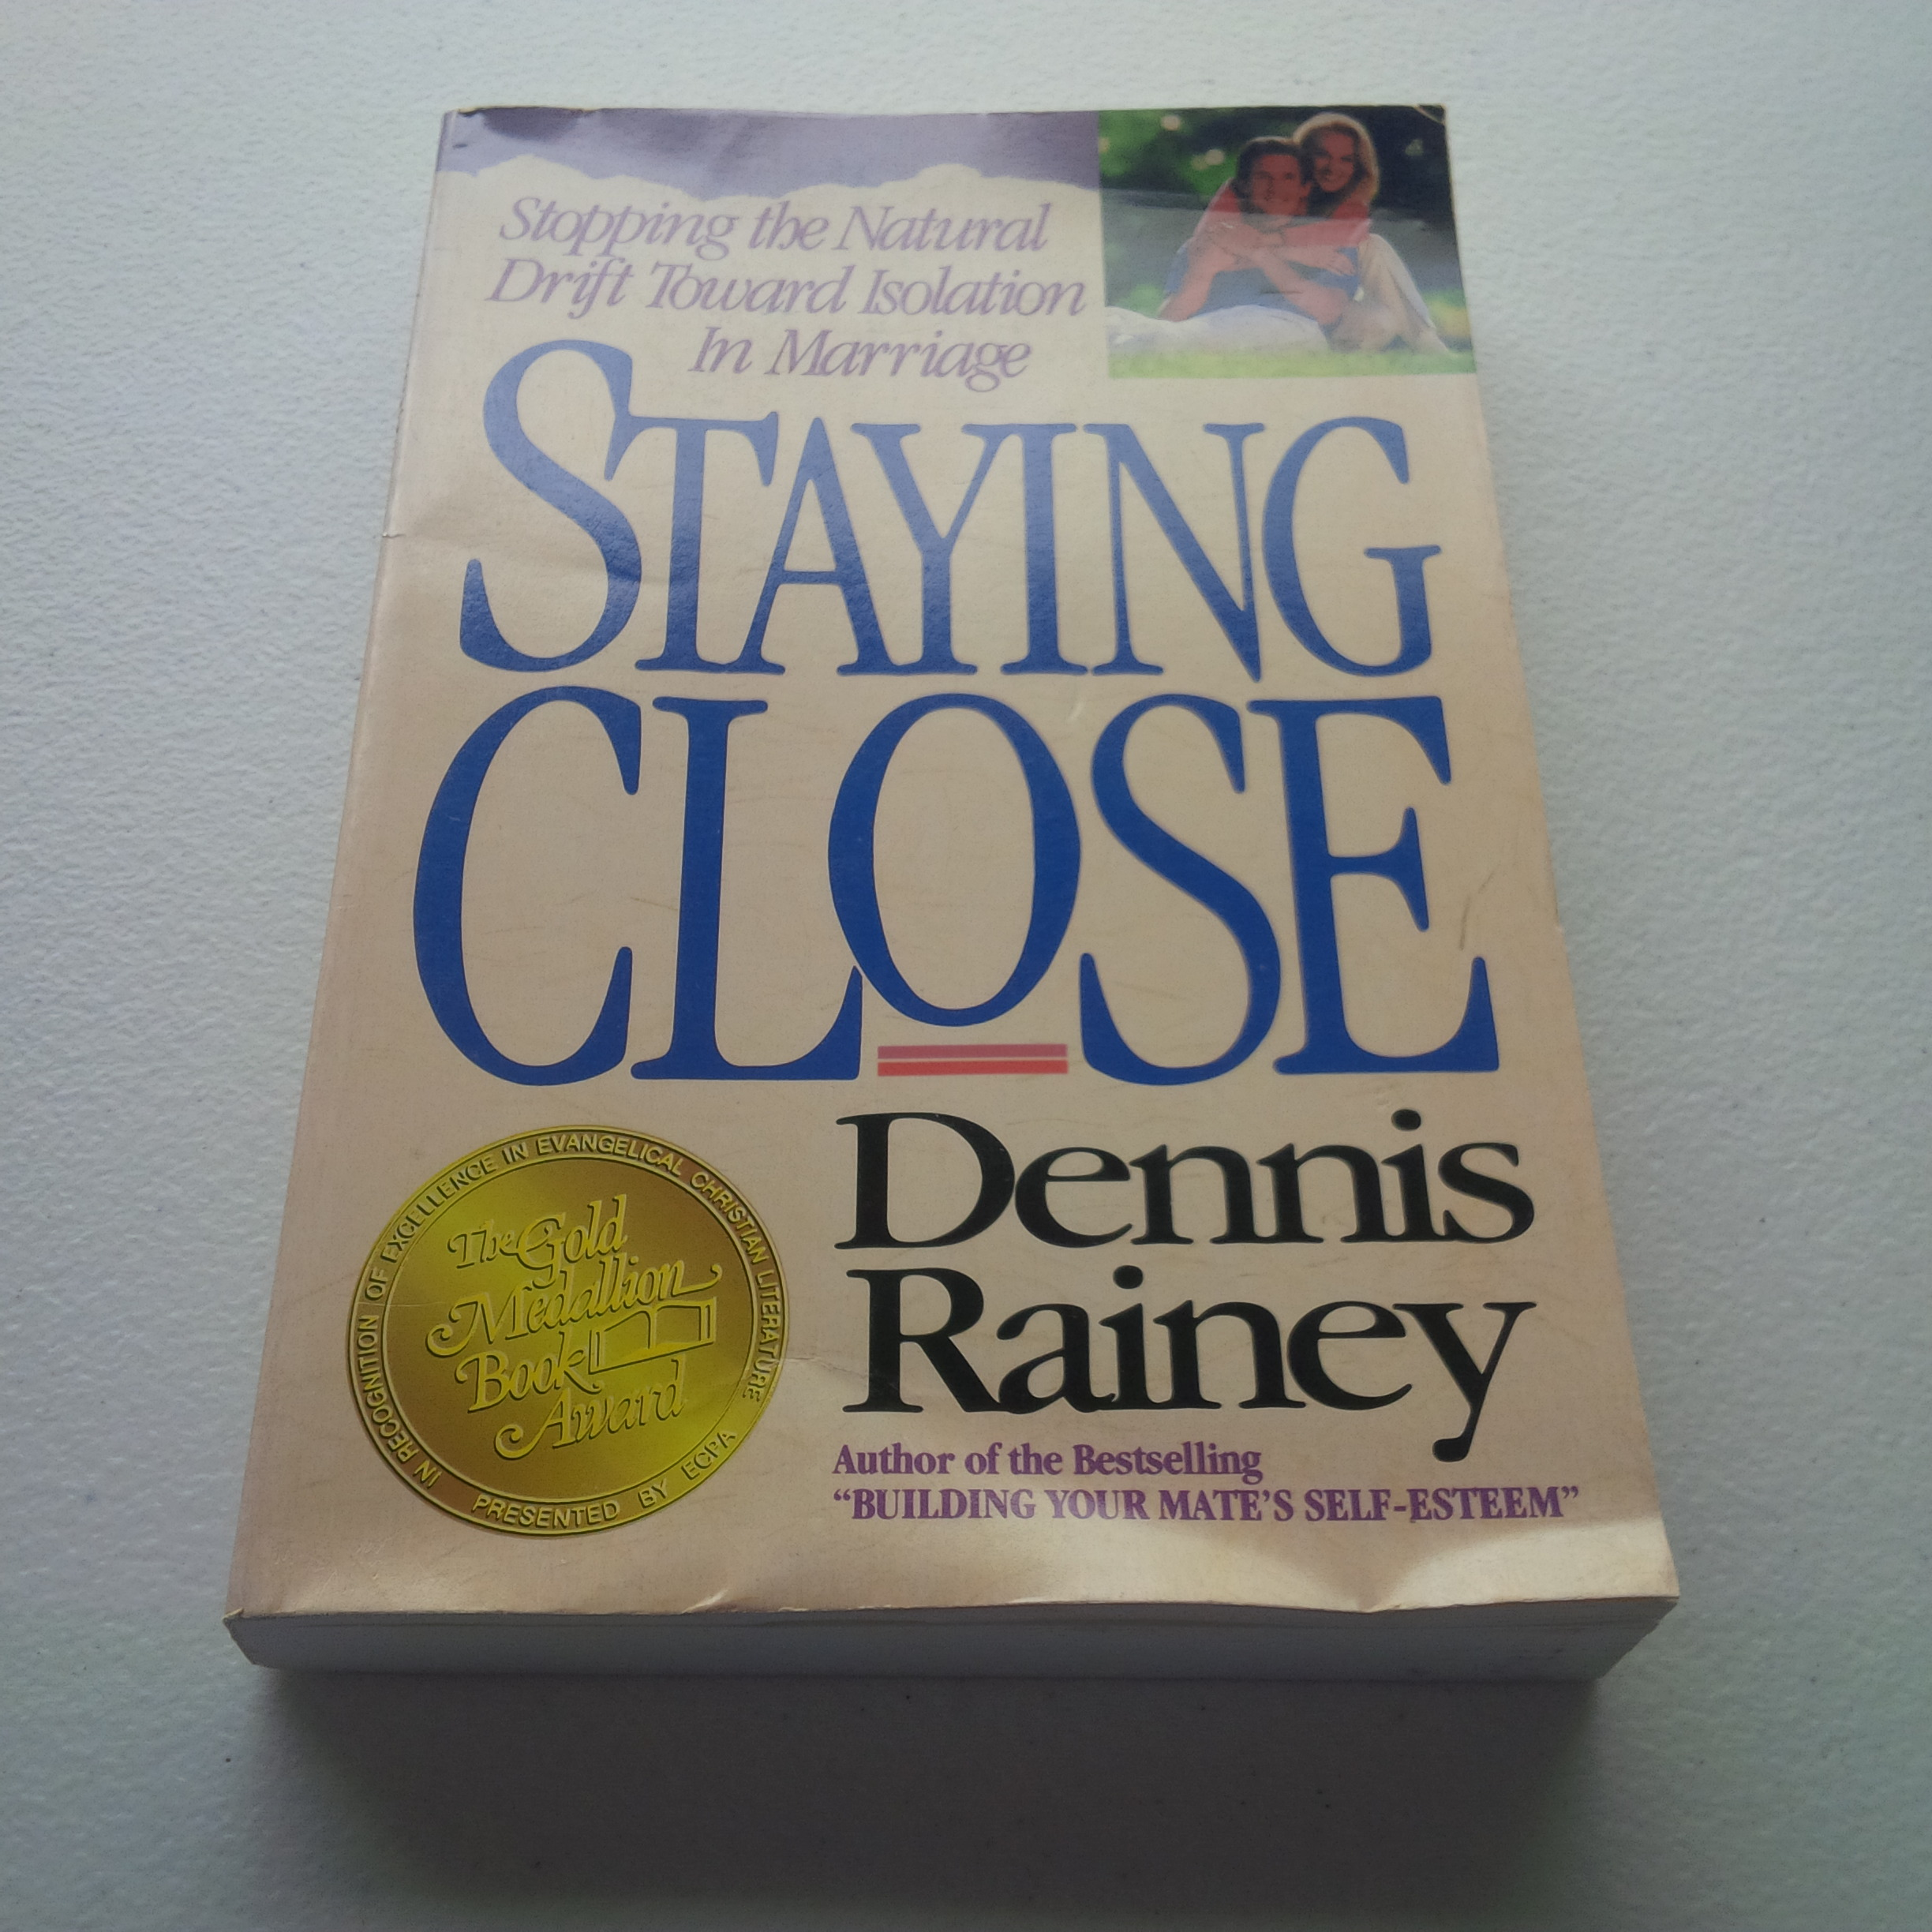 Used  1989 Dennis Rainey 0-8499-3343-9 Staying Close - St...